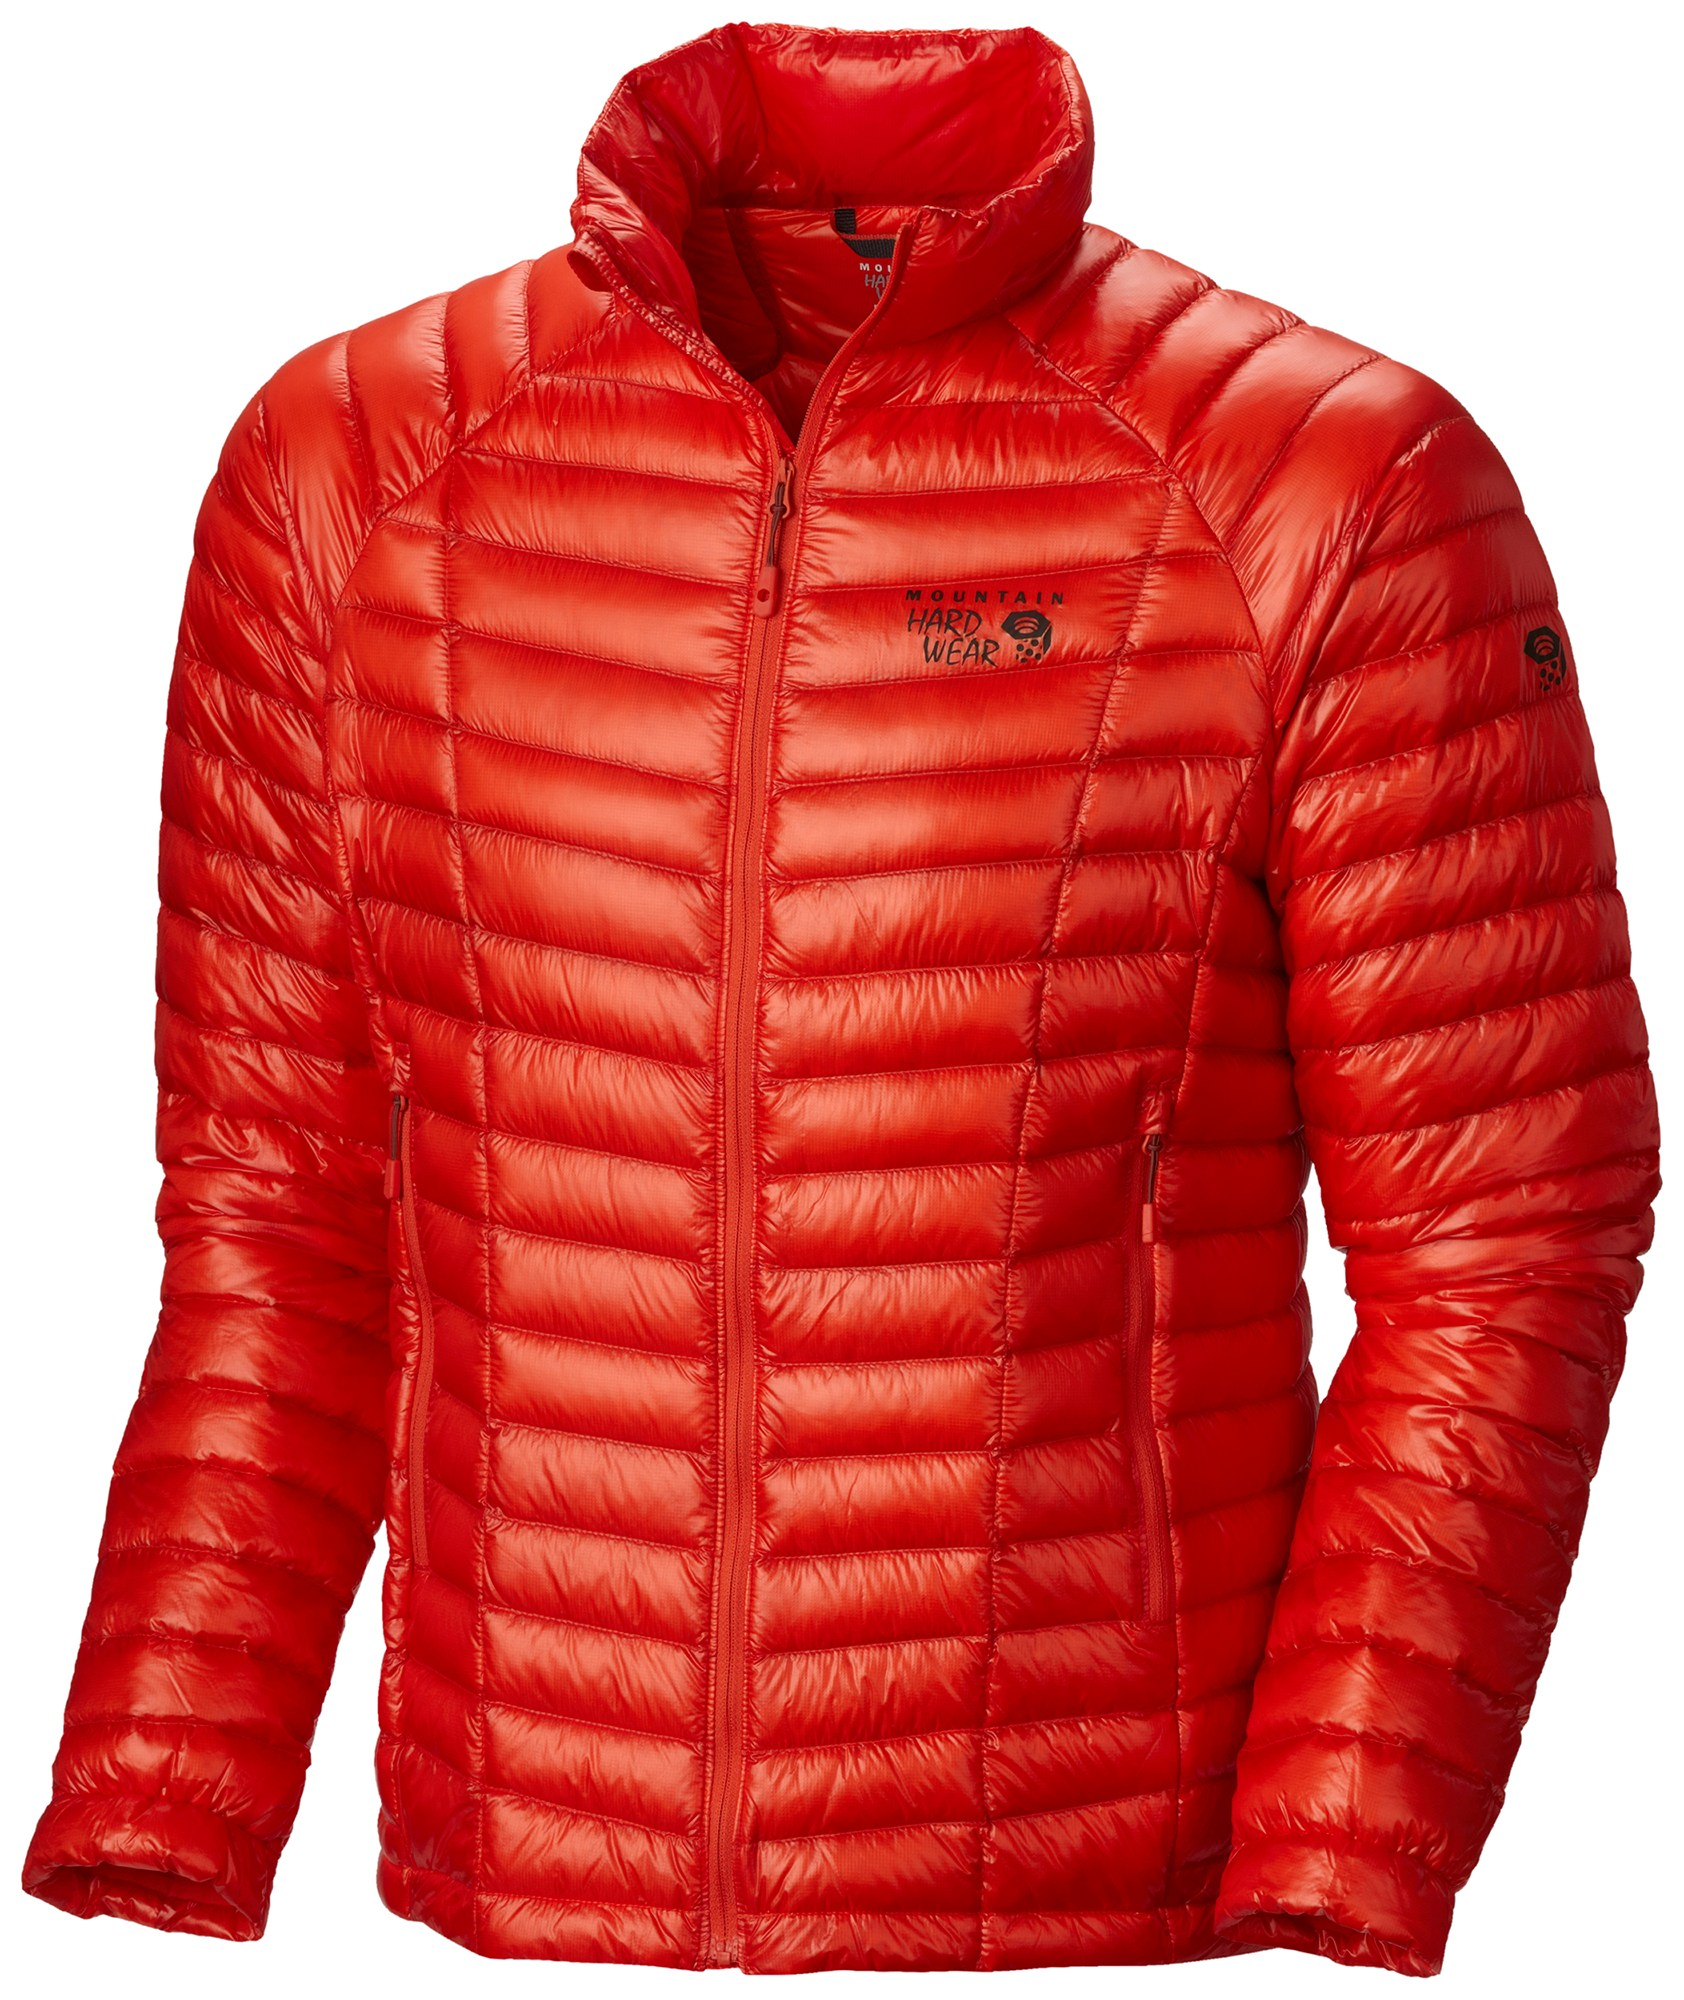 Mountain Hardwear&39s Ghost Whisperer Down is an Epic Ultralight Jacket